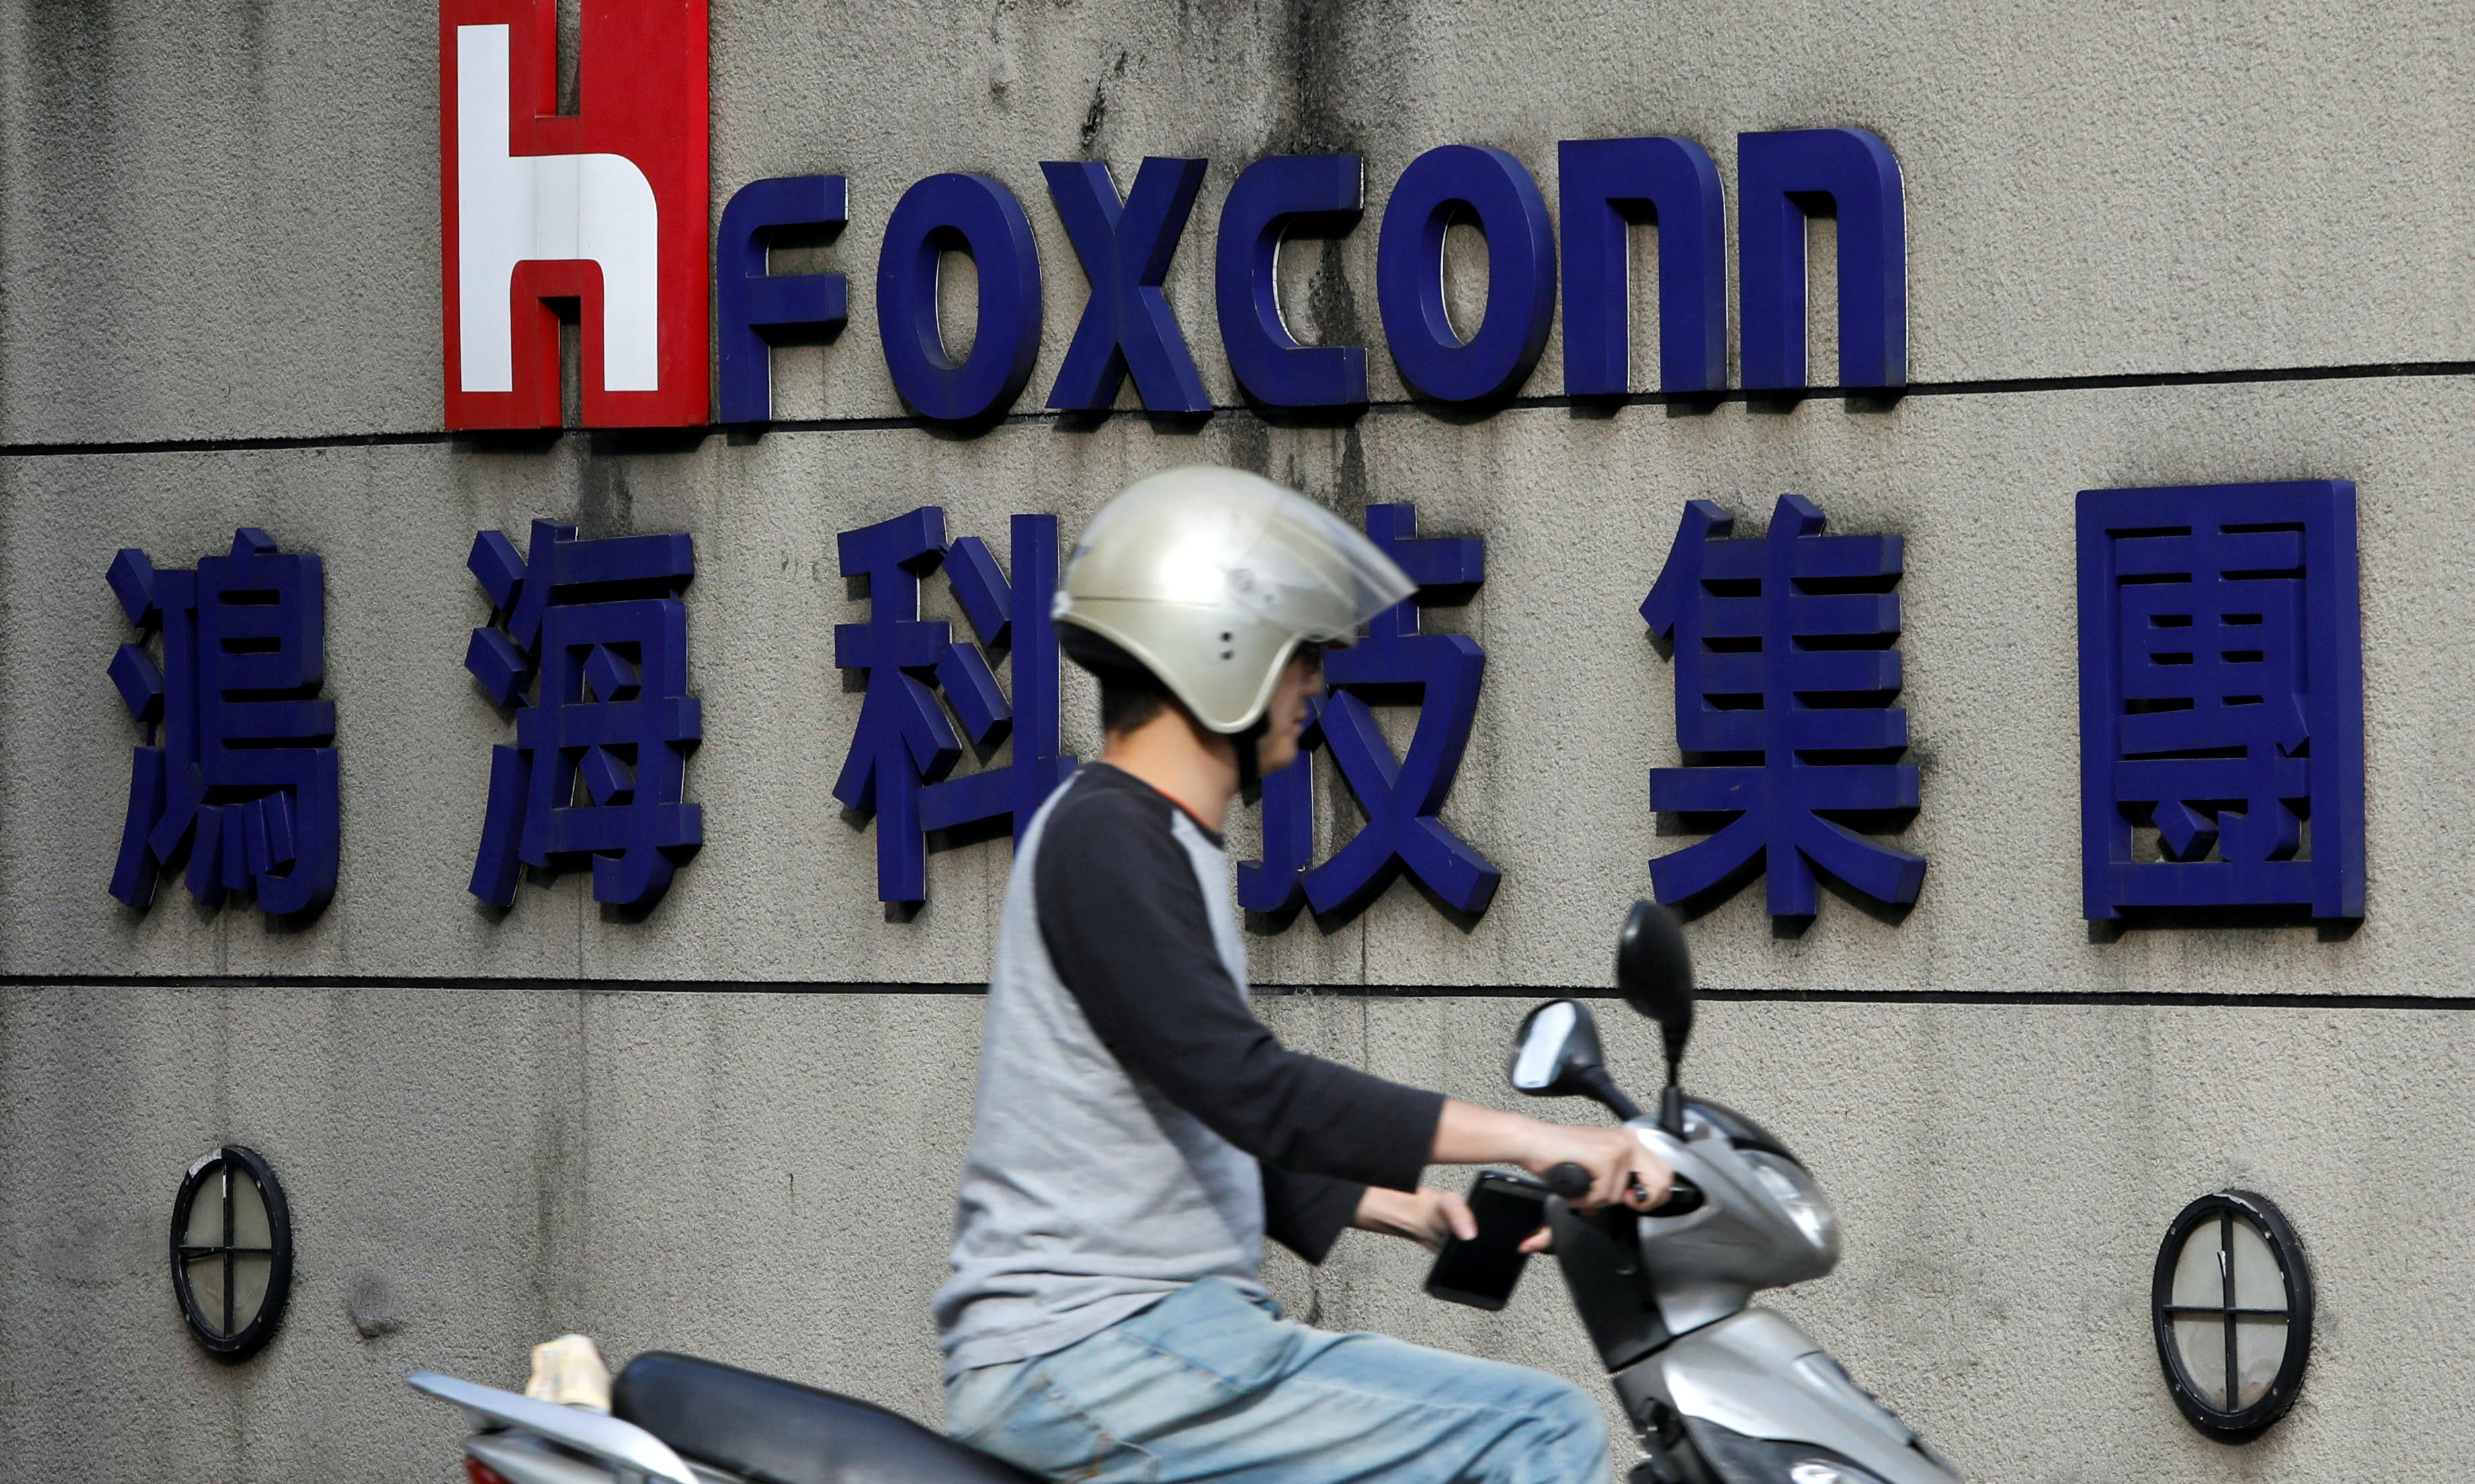 Taiwan's Foxconn Is Considering Opening an iPhone Factory in Vietnam